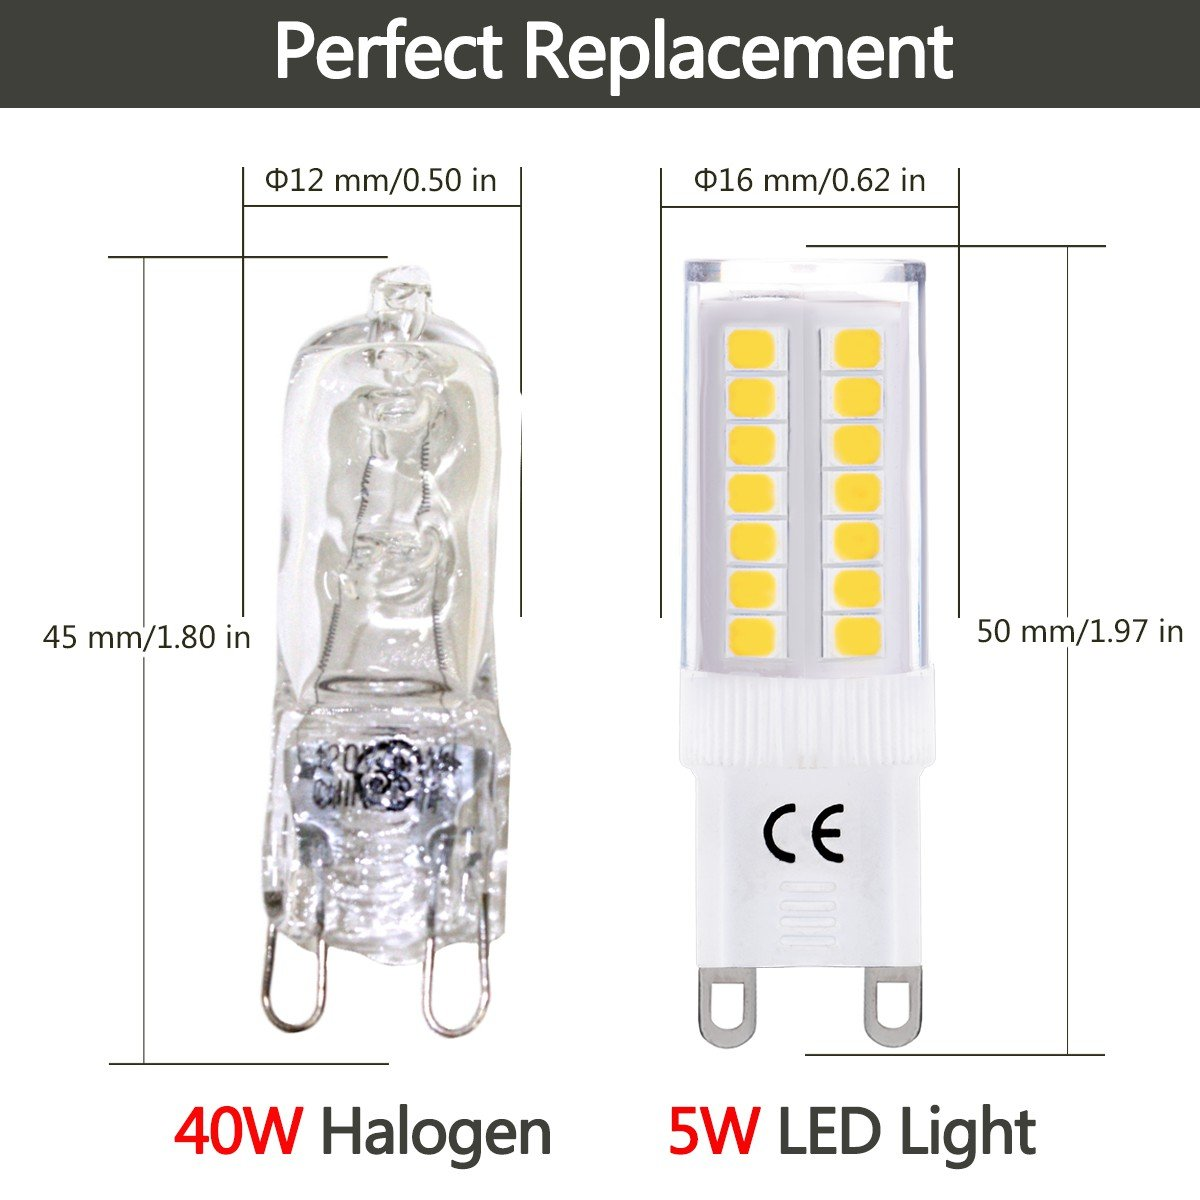 LOHAS® 4x G9 Bombillas LED 5W equivalentes a Lámparas halógenas de 40W, Blanca Neutra 4000K, 400lm, 360°ángulo de haz, 2835 SMD, No-Regulable: Amazon.es: ...